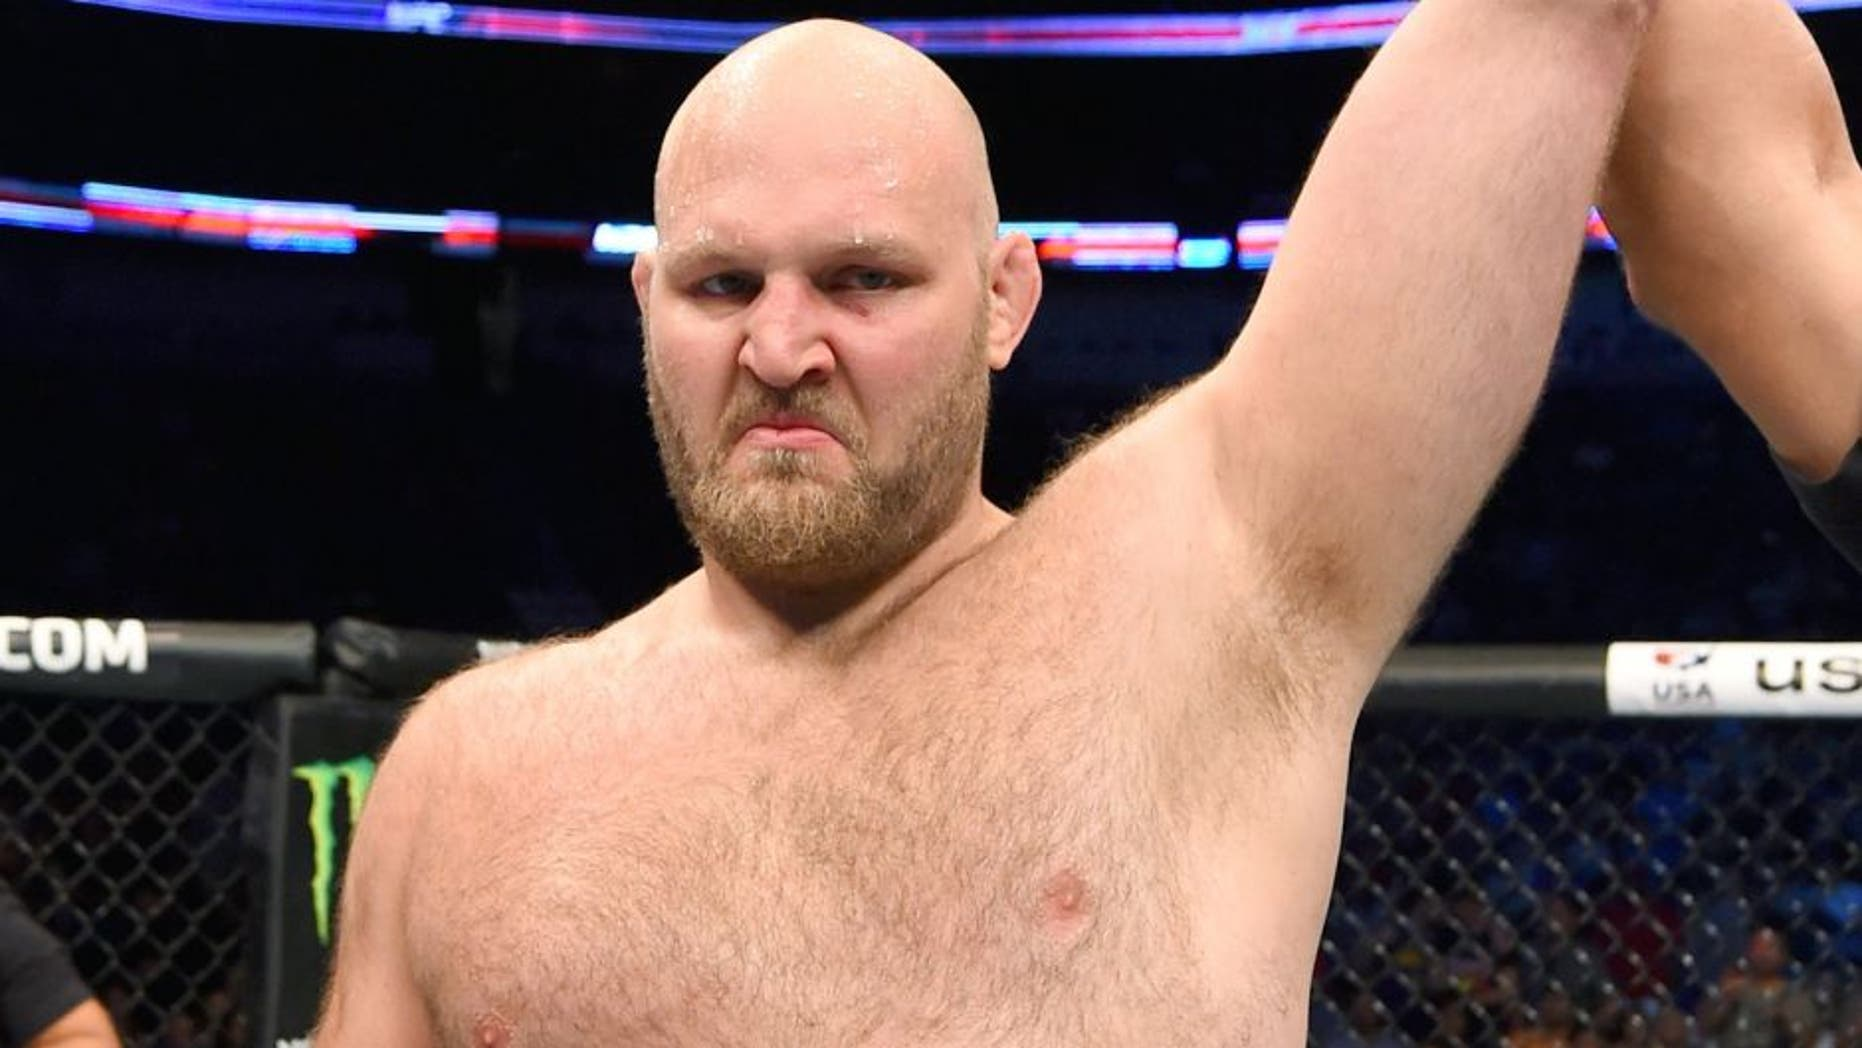 NEW ORLEANS, LA - JUNE 06: Ben Rothwell celebrates his submission victory over Matt Mitrione in their heavyweight bout during the UFC event at the Smoothie King Center on June 6, 2015 in New Orleans, Louisiana. (Photo by Josh Hedges/Zuffa LLC/Zuffa LLC via Getty Images)